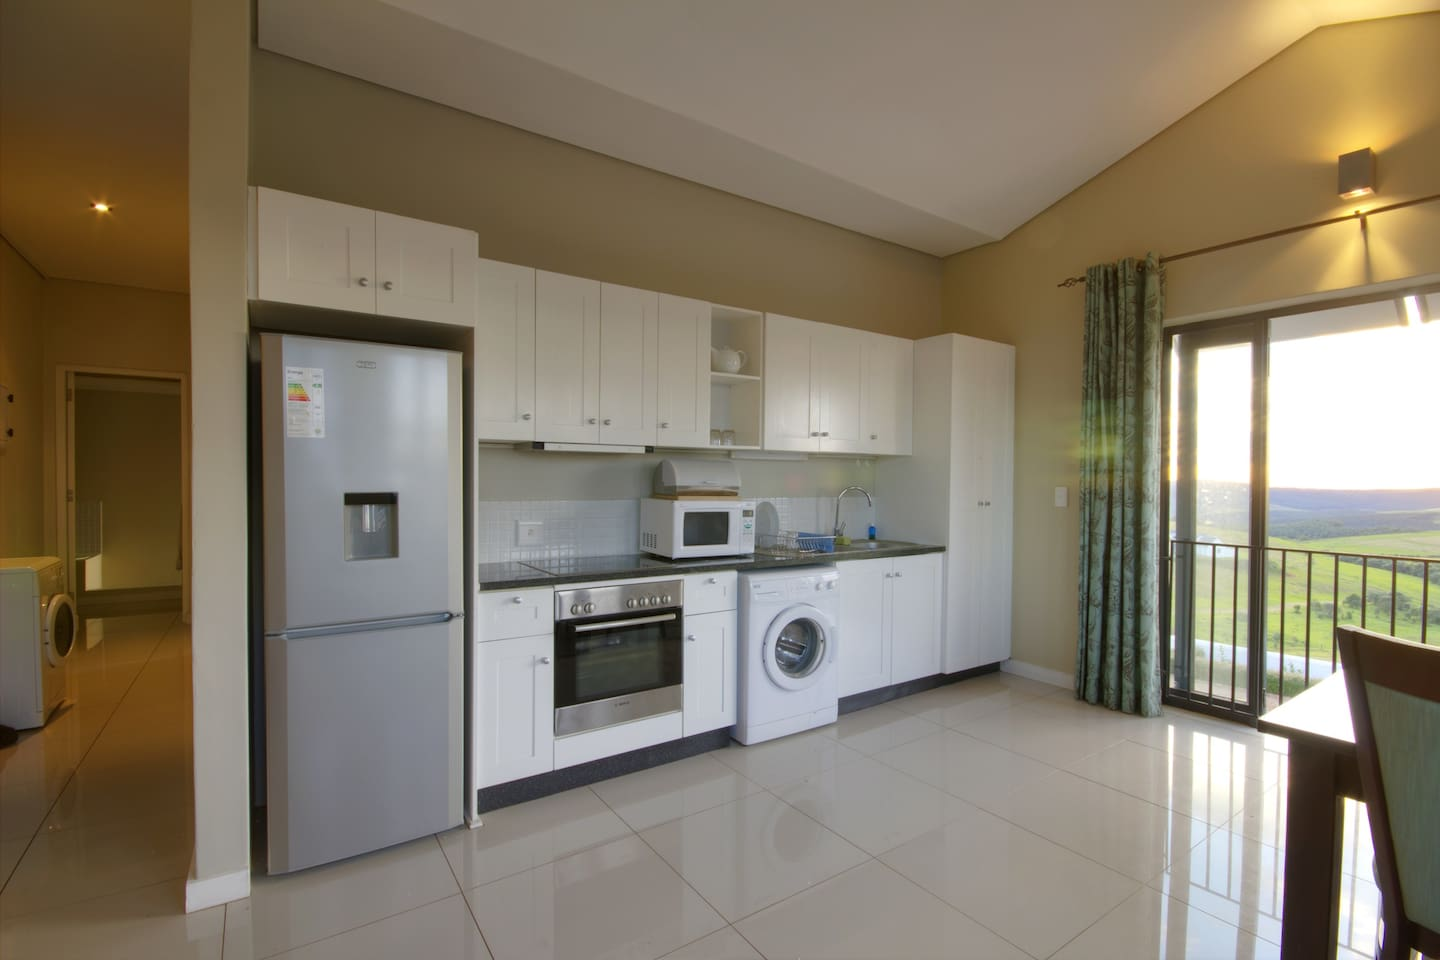 fully-furnished-apartment-available-for-monthly-rentals-garlington-estate-farm-lifestyle-housing